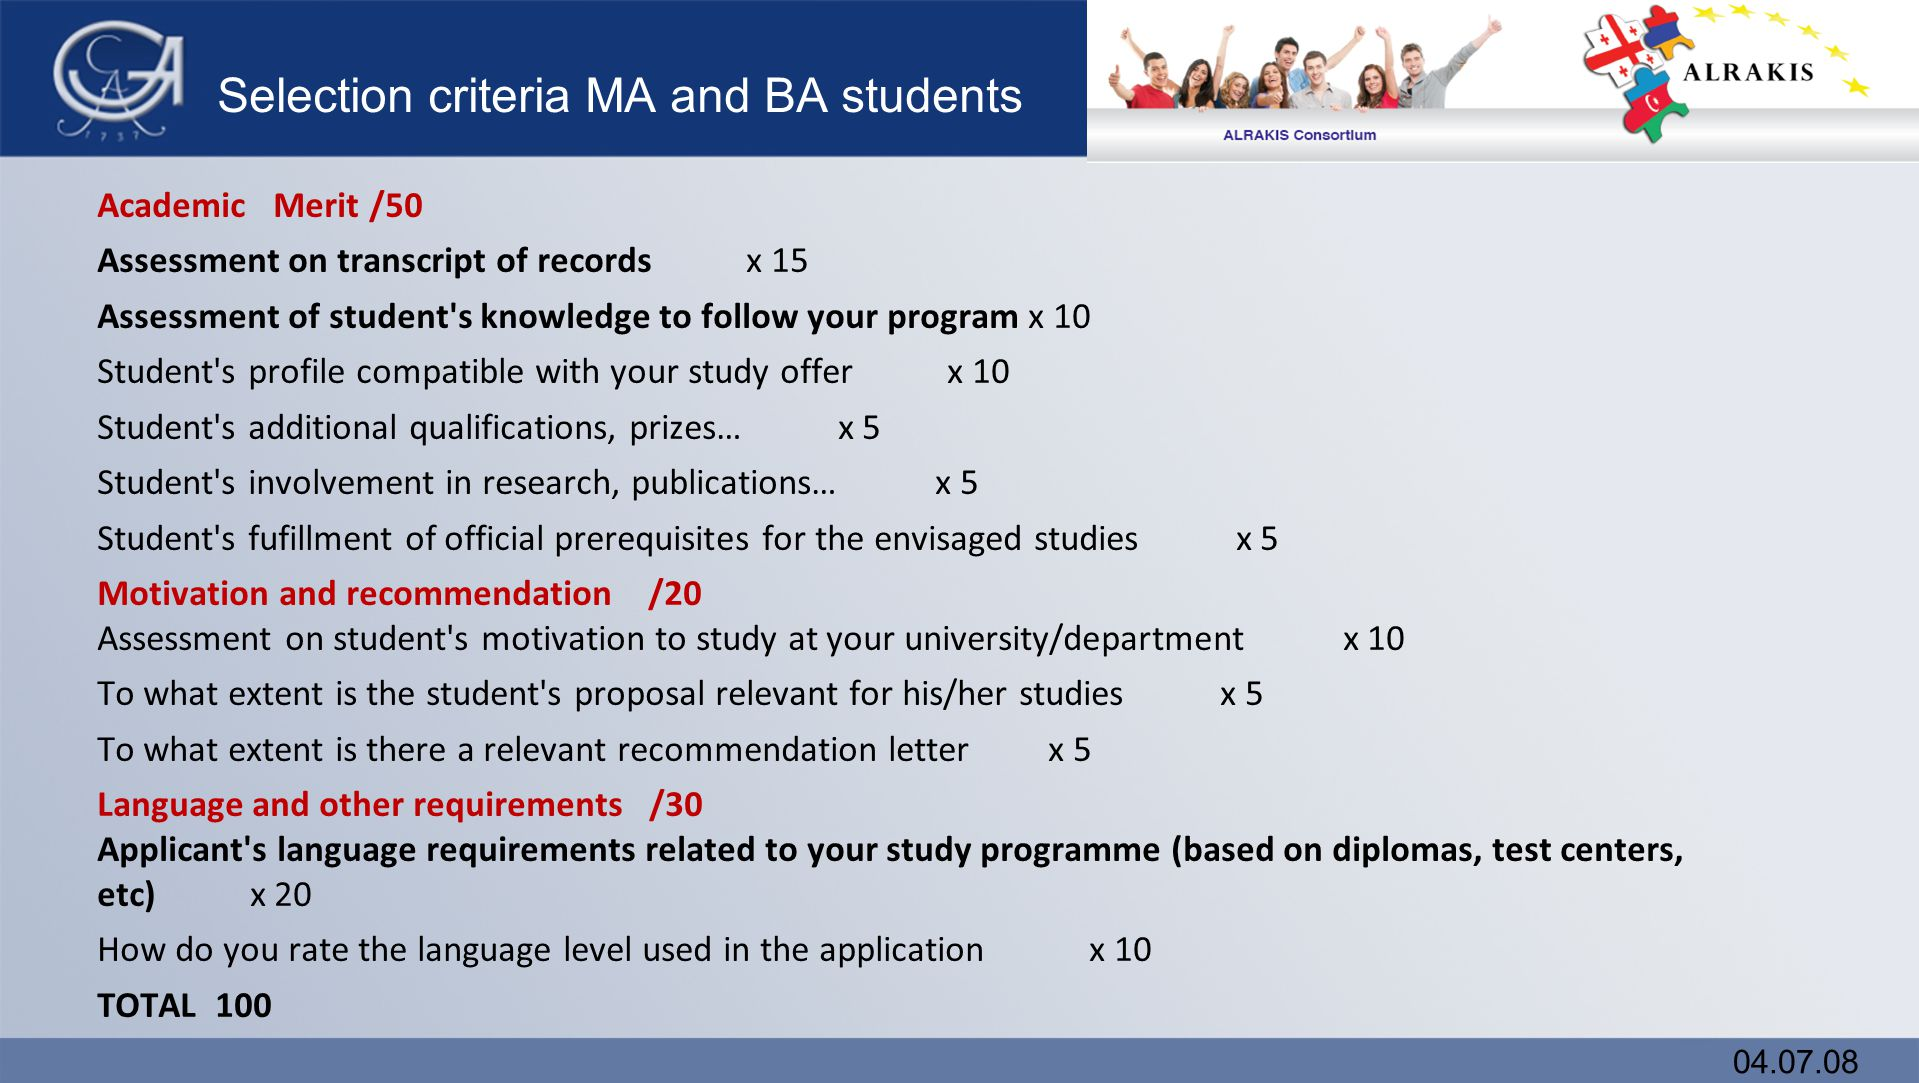 Selection criteria MA and BA students Academic Merit /50 Assessment on transcript of records x 15 Assessment of student s knowledge to follow your program x 10 Student s profile compatible with your study offer x 10 Student s additional qualifications, prizes… x 5 Student s involvement in research, publications… x 5 Student s fufillment of official prerequisites for the envisaged studies x 5 Motivation and recommendation /20 Assessment on student s motivation to study at your university/department x 10 To what extent is the student s proposal relevant for his/her studies x 5 To what extent is there a relevant recommendation letter x 5 Language and other requirements /30 Applicant s language requirements related to your study programme (based on diplomas, test centers, etc) x 20 How do you rate the language level used in the application x 10 TOTAL 100 04.07.08